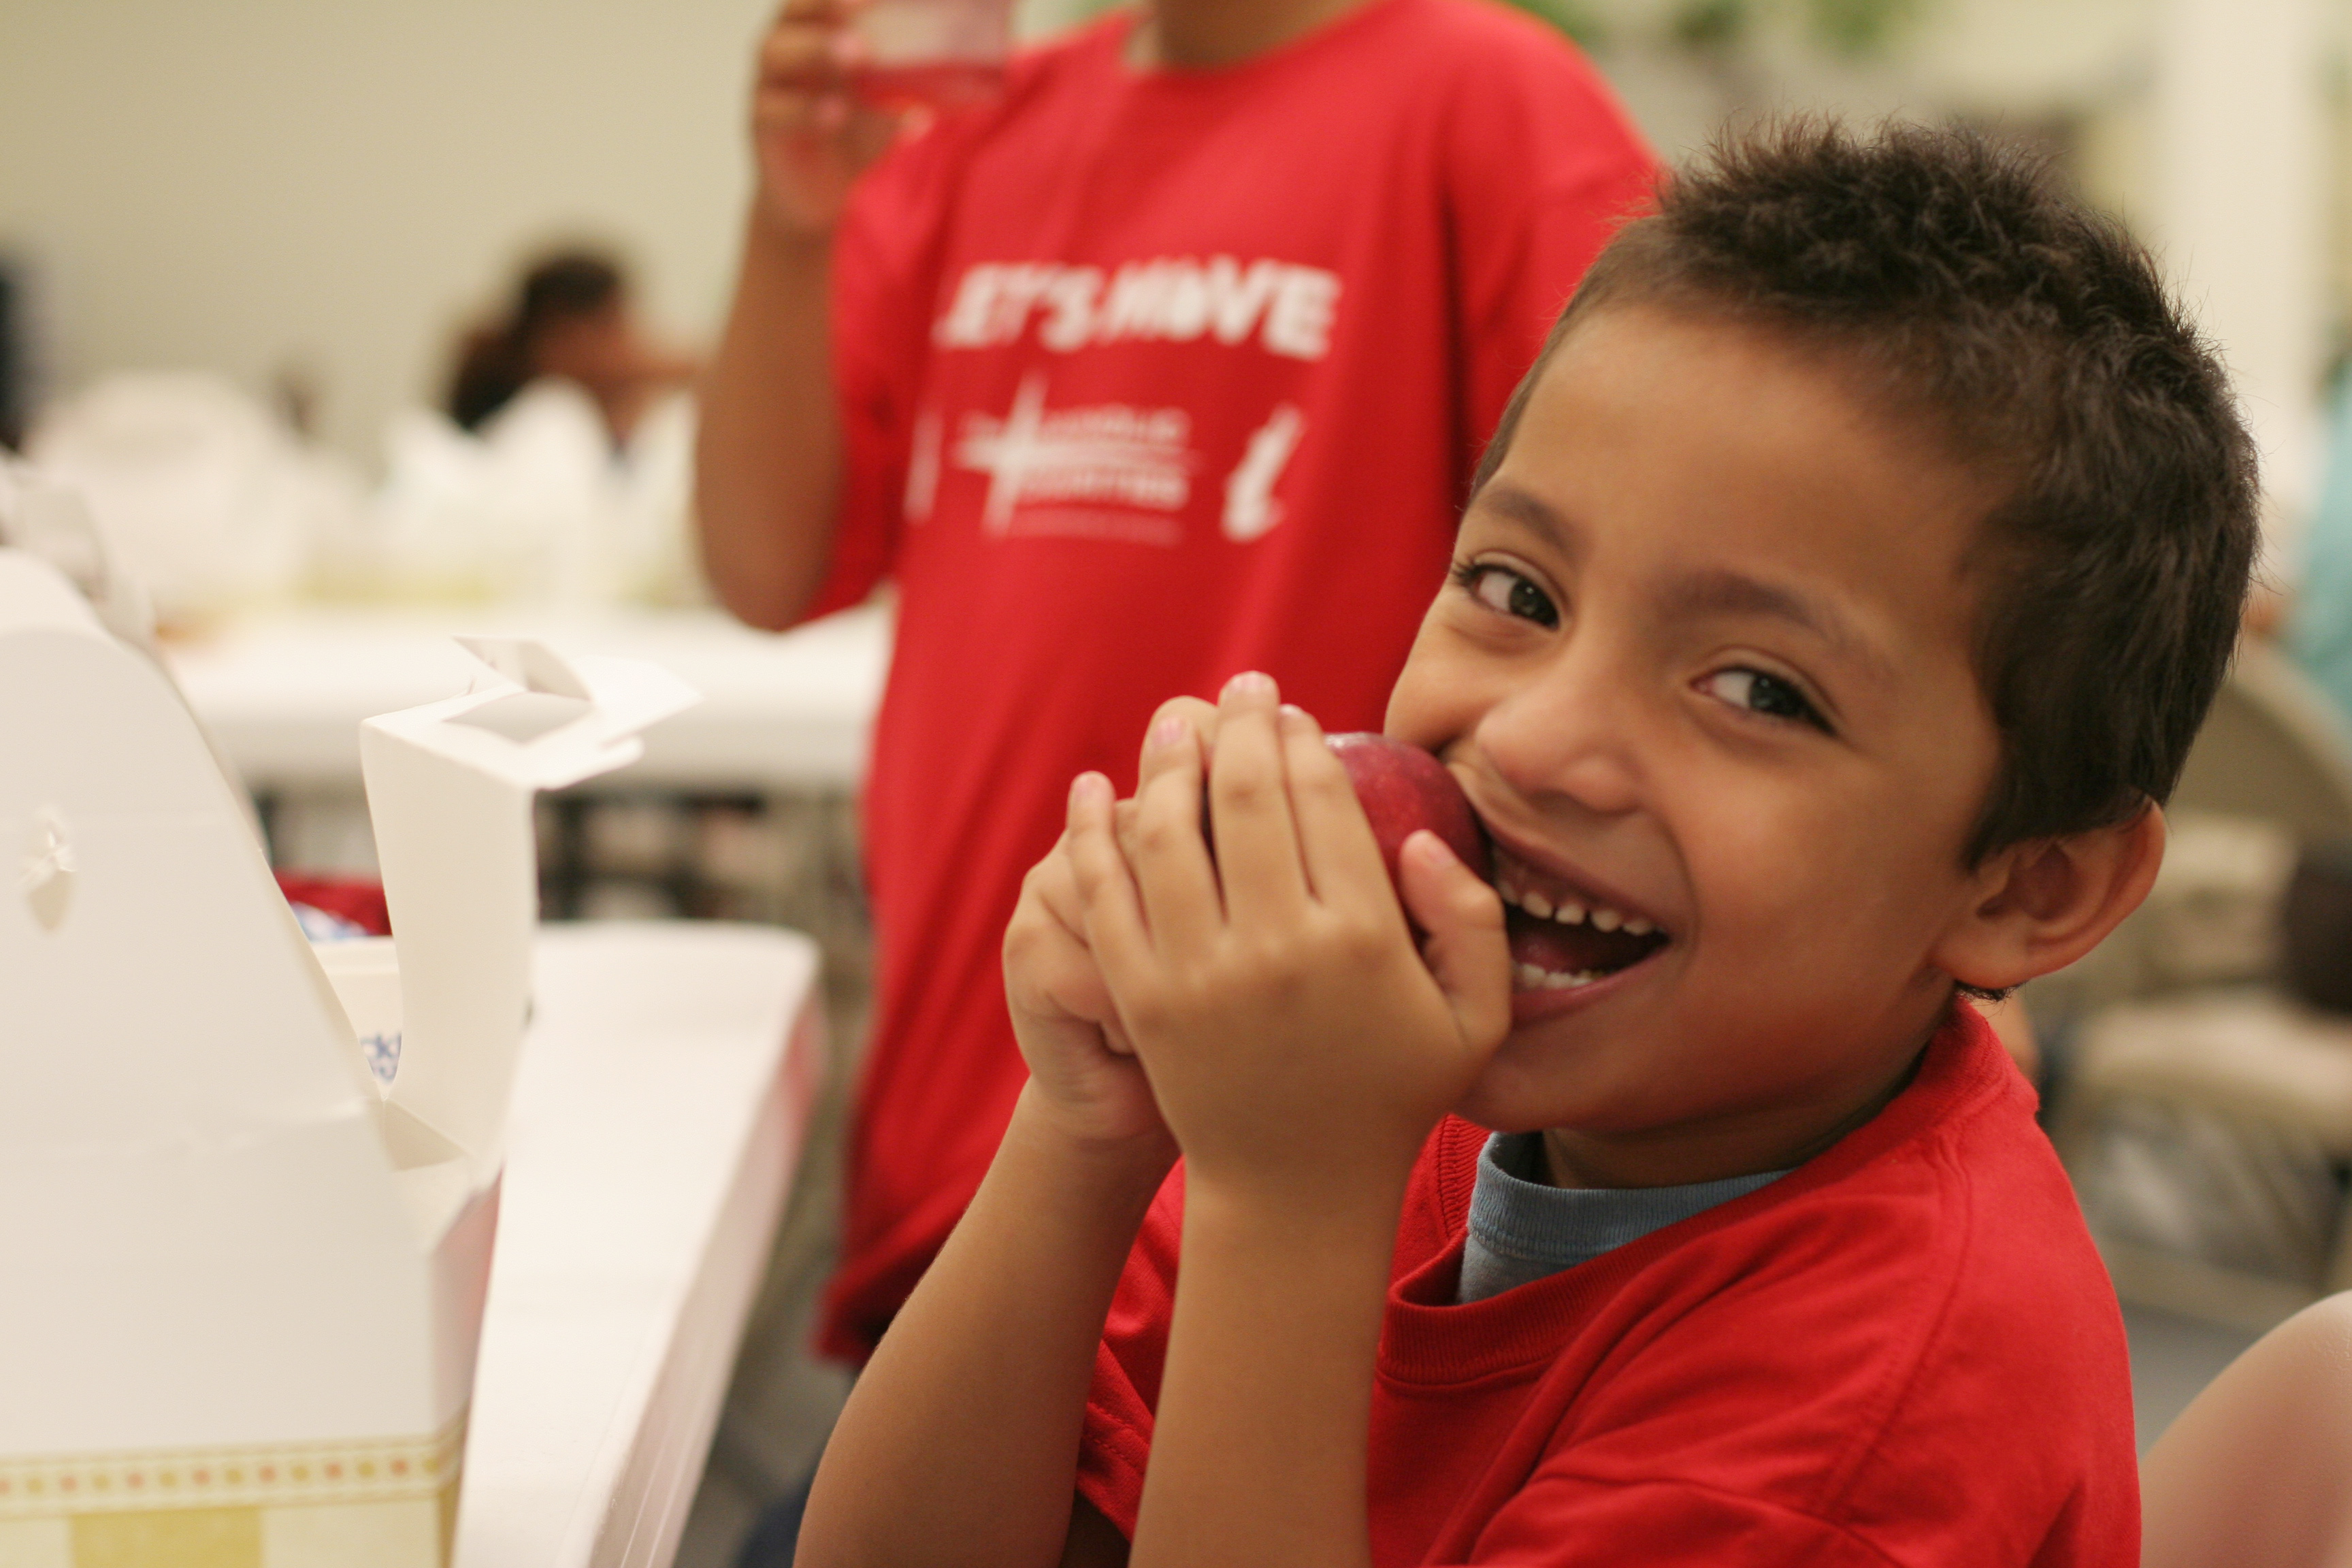 lottery charities helping kids in need